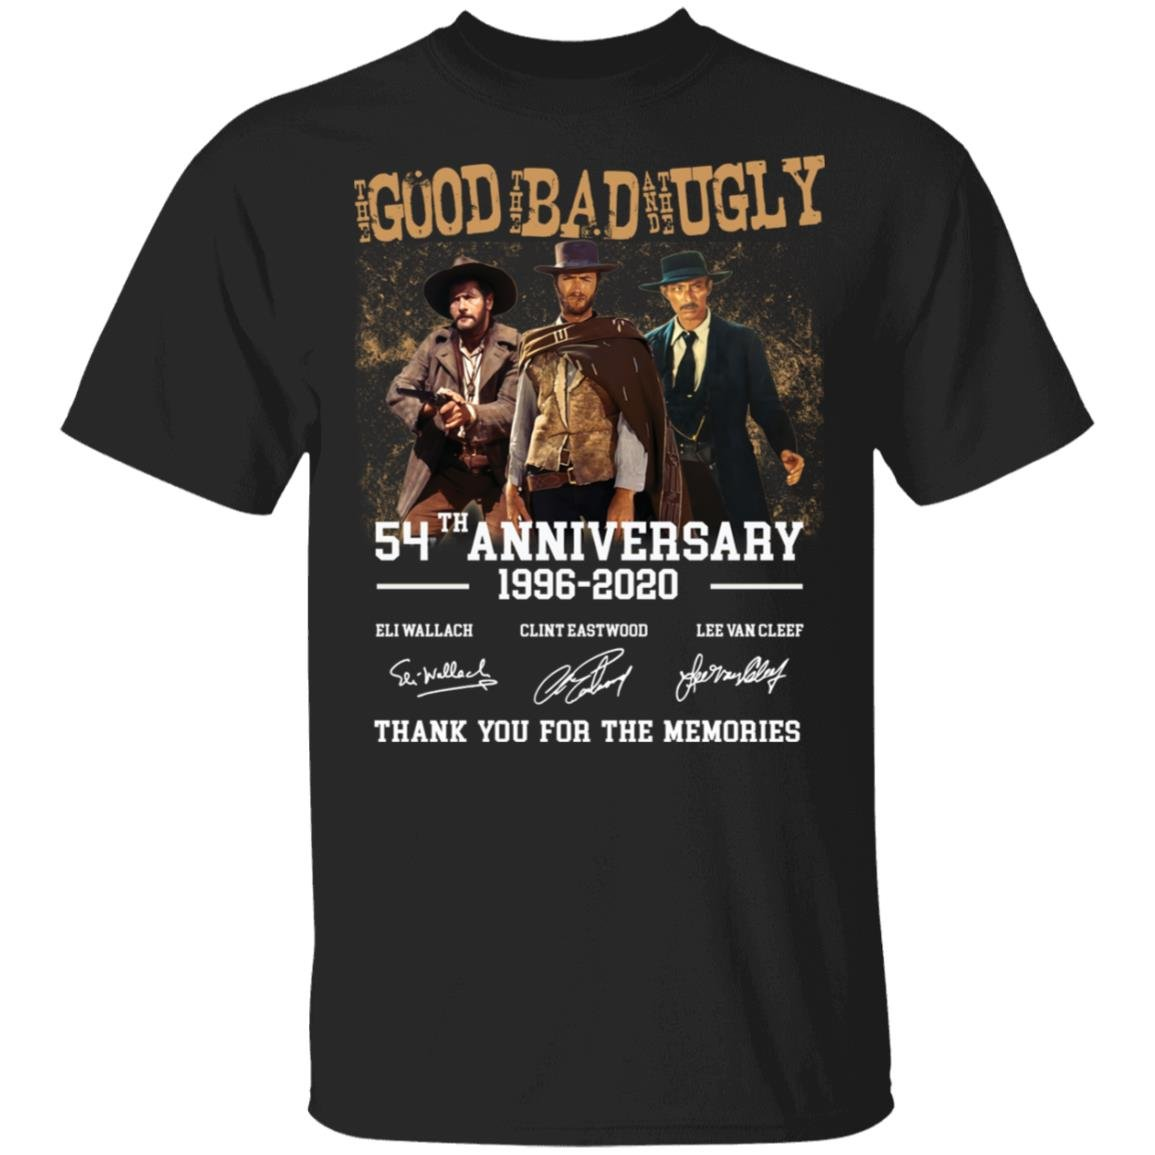 The Beatles Good Bad Ugly 54th Anniversary Black Shirt 100/% Cotton Plus Size